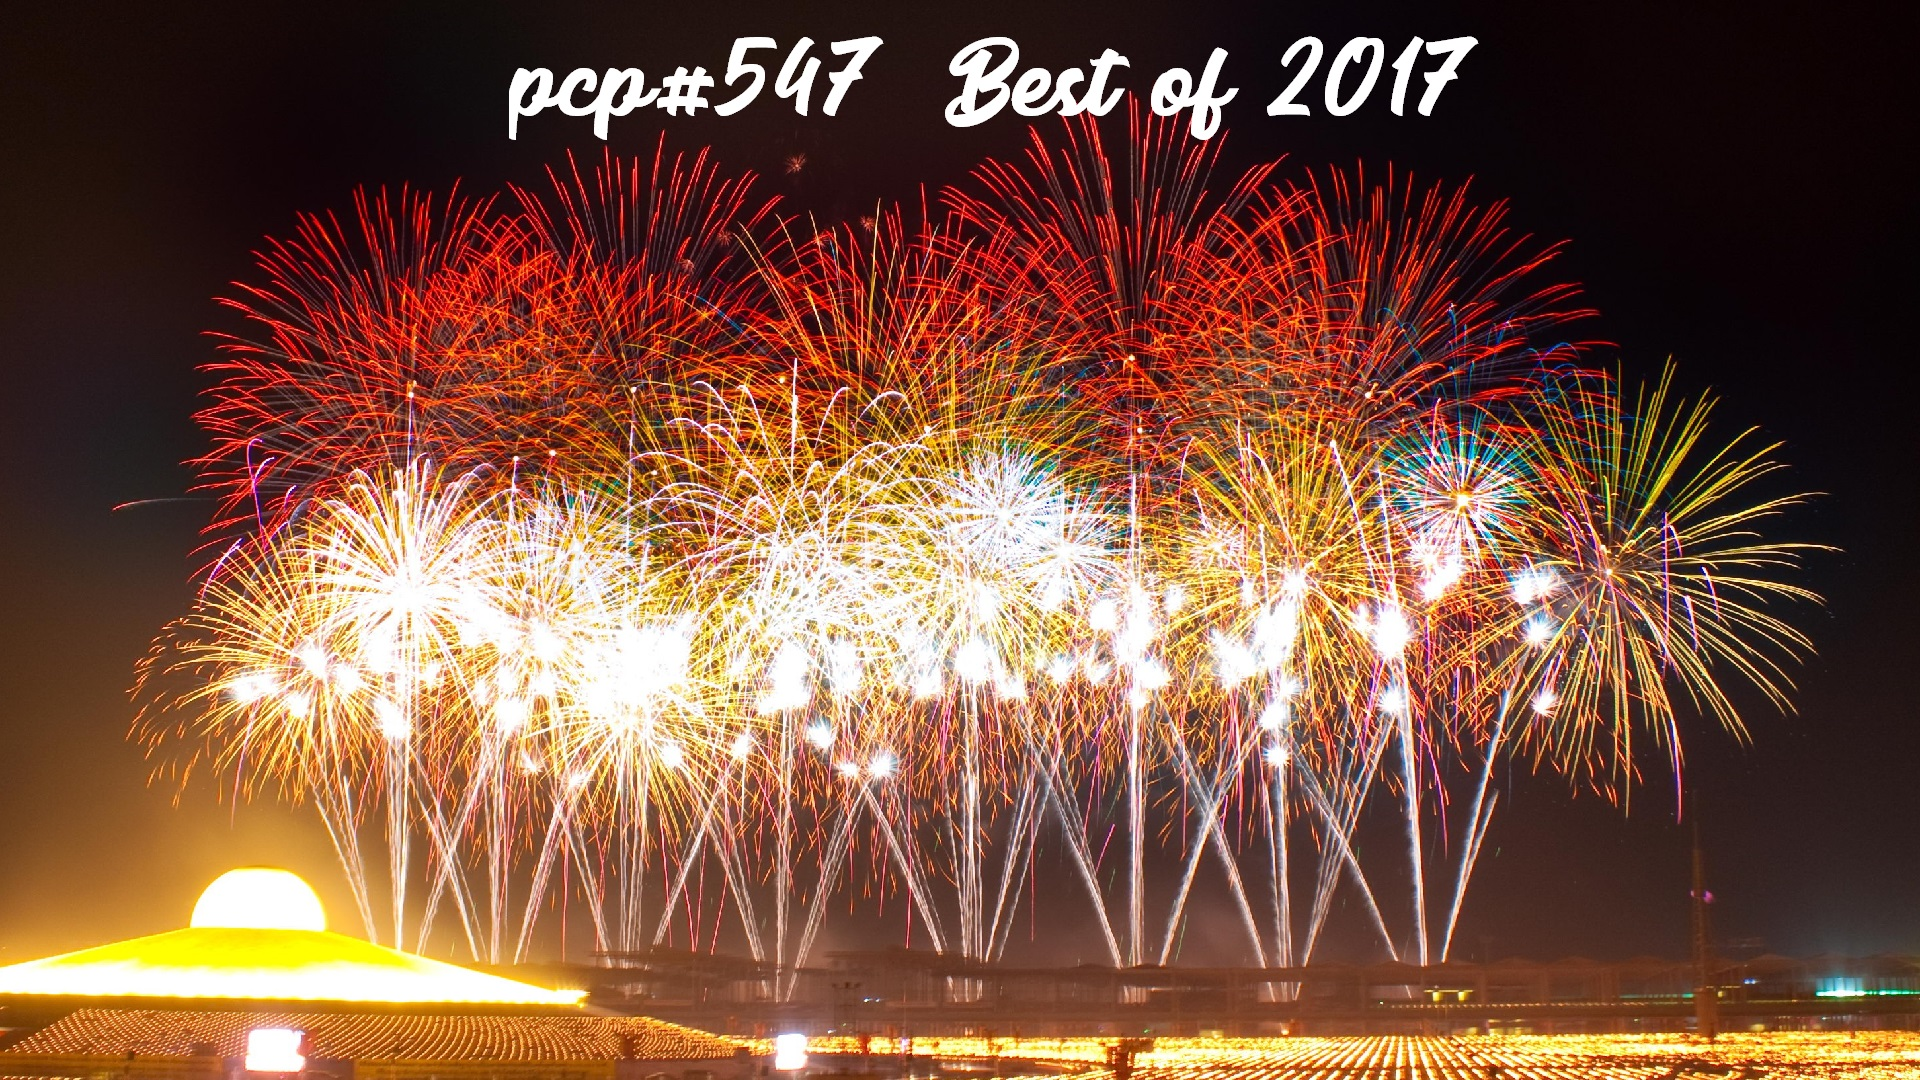 PCP#547... Best of 2017...